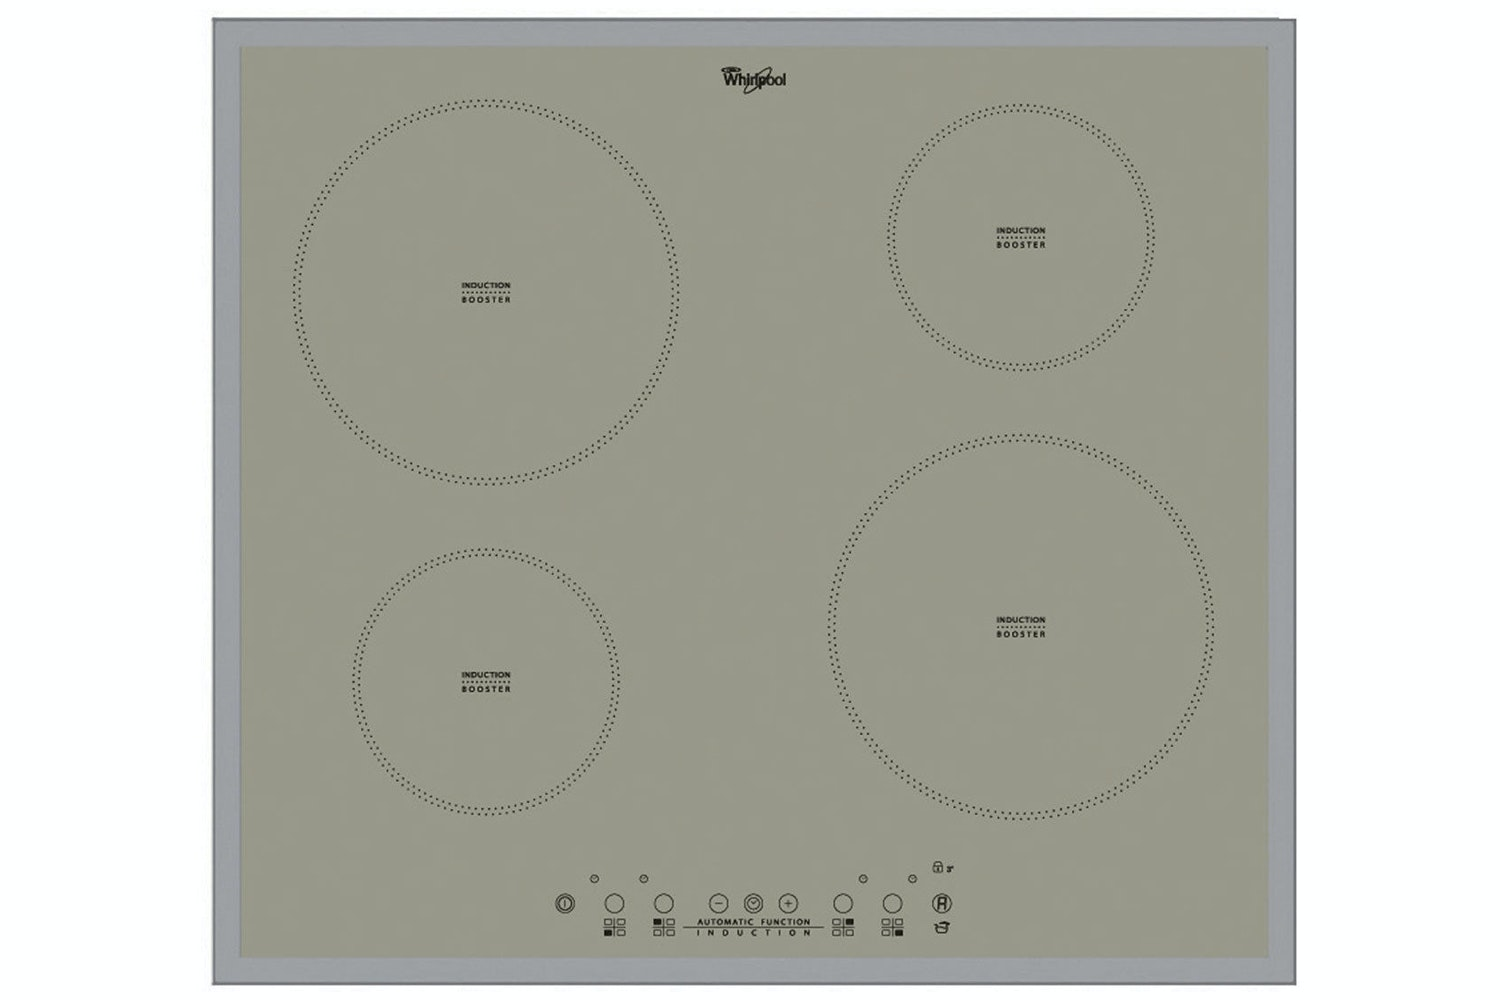 Whirlpool 60cm Induction Hob Silver | ACM804/BA/S